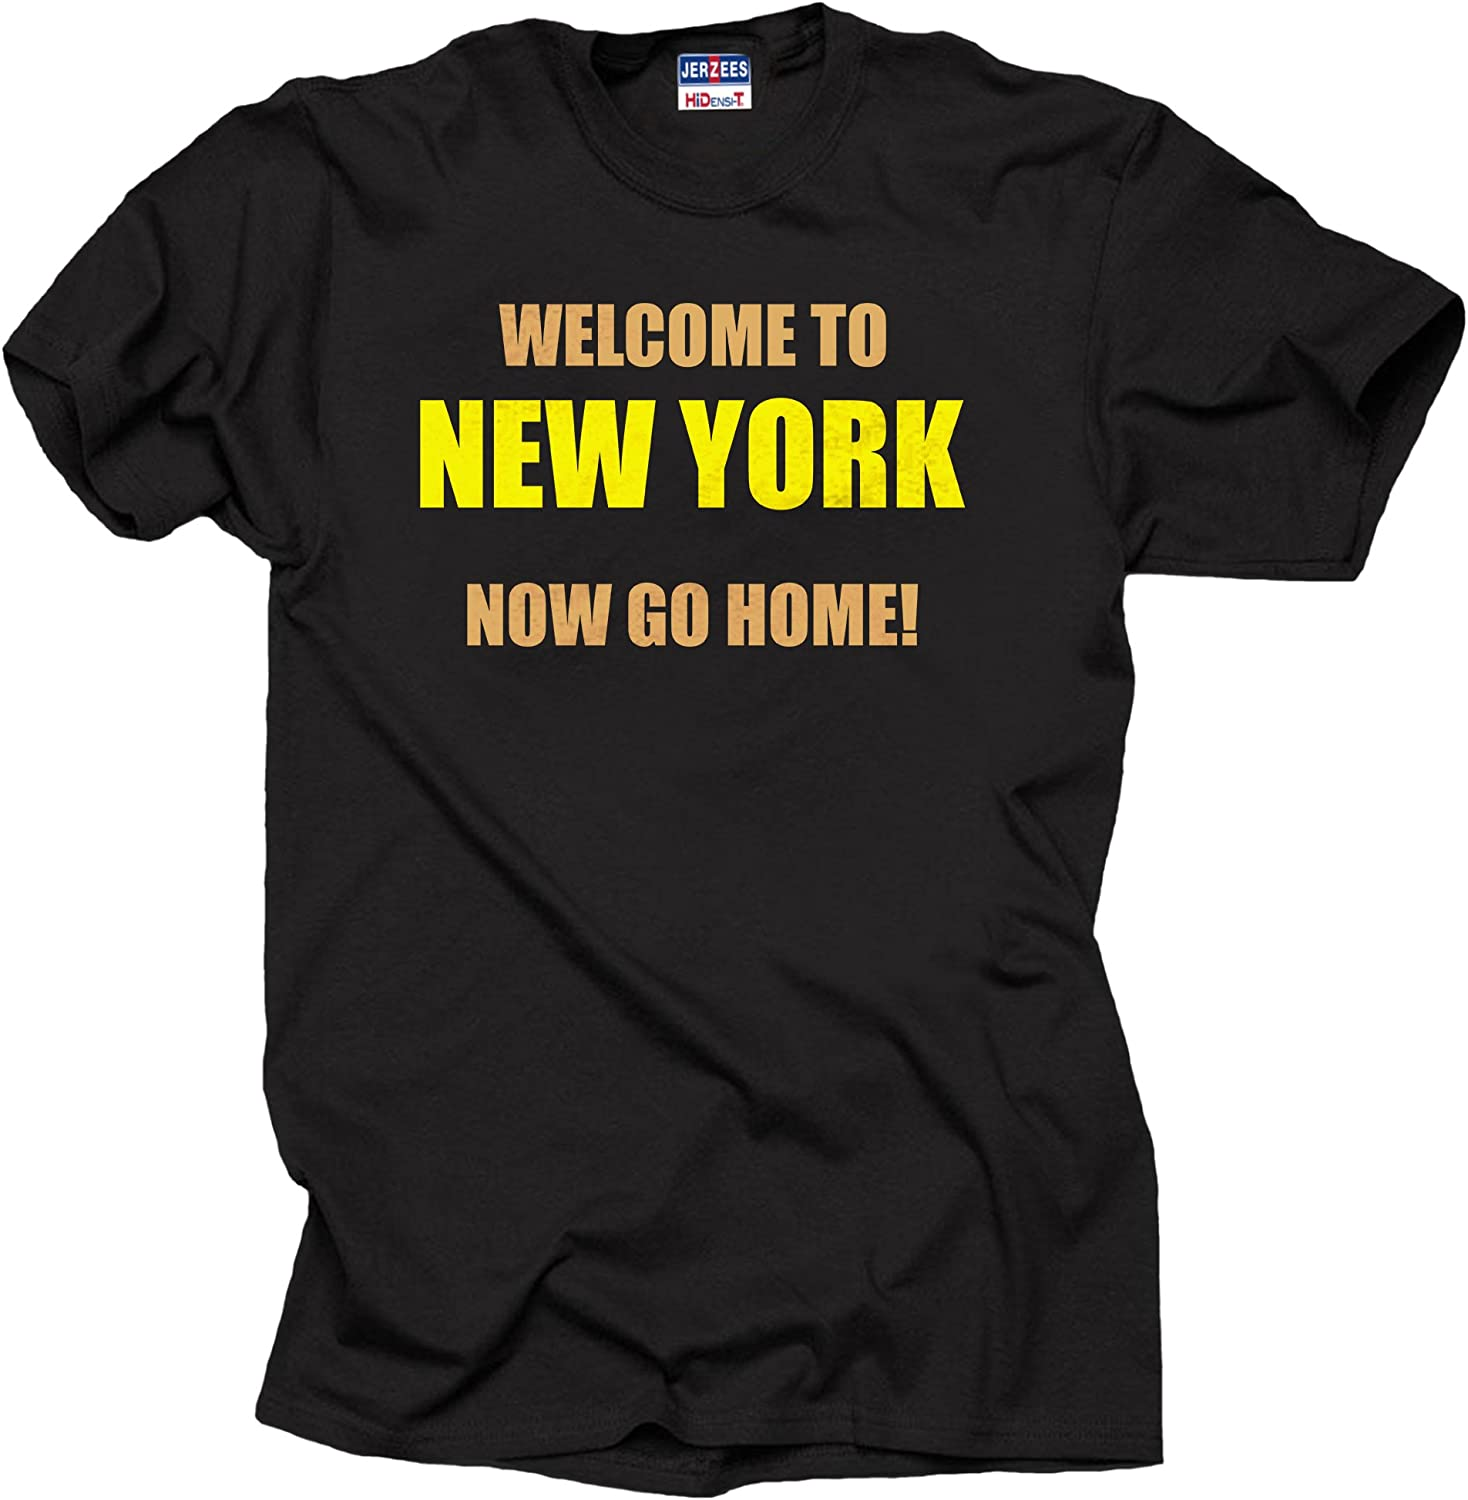 New York T-Shirt Welcome to New York Now go Home tee Shirt